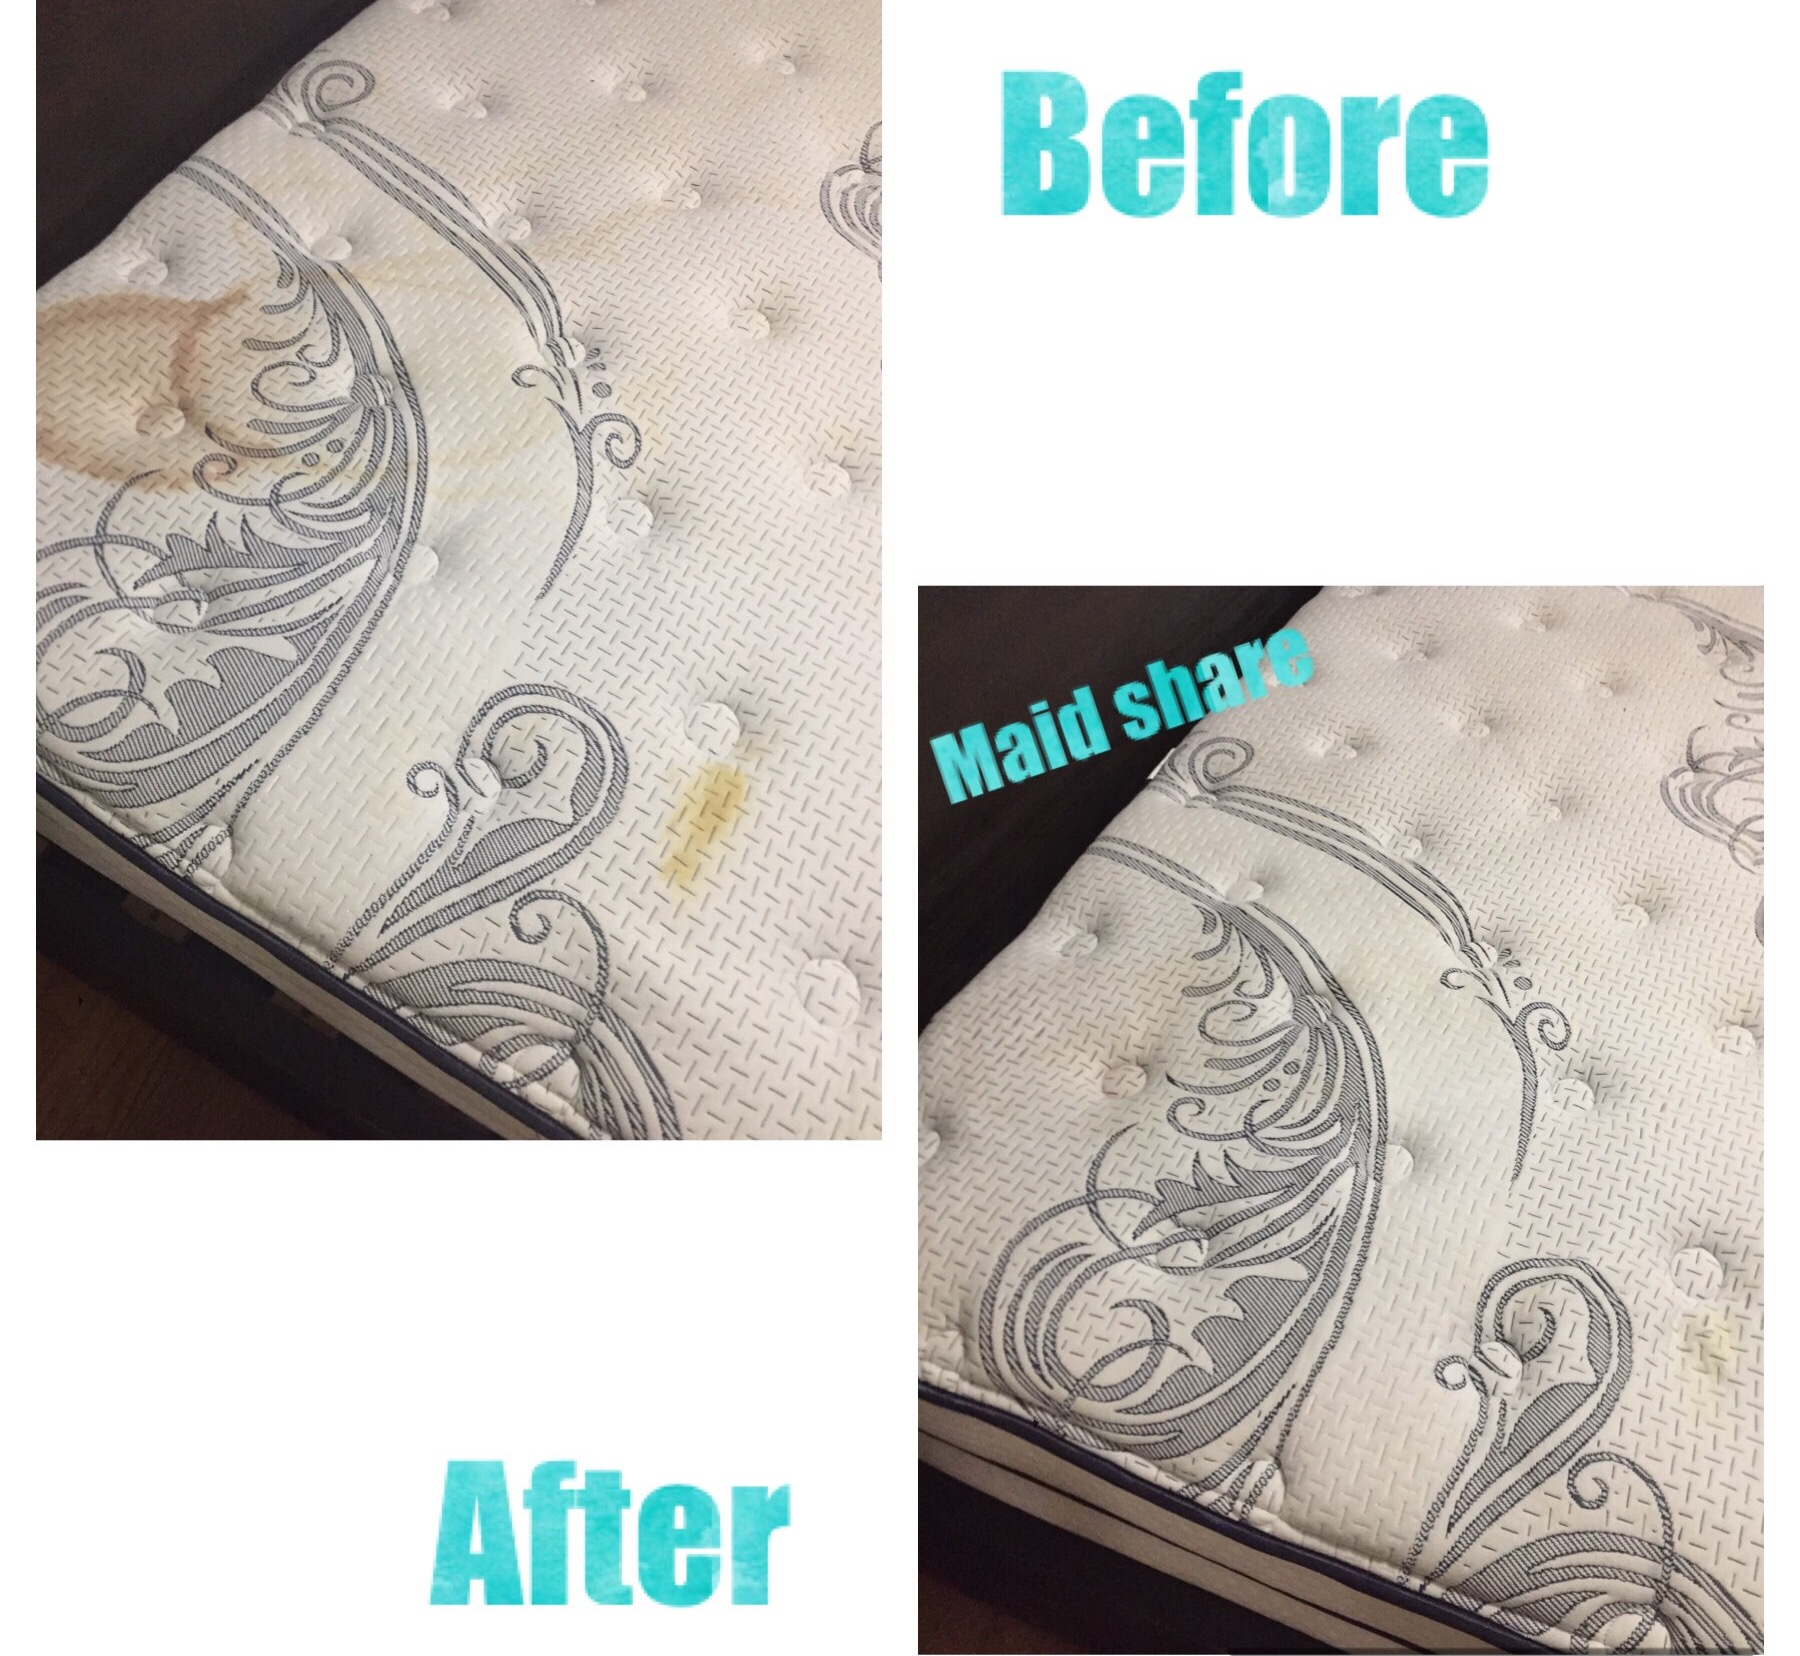 Mattress Sanitize + Stain Removal  Maid Share uses Steam to clean not only remove stains but to also sanitize your mattress. For a Eco friendly, all natural green cleanng